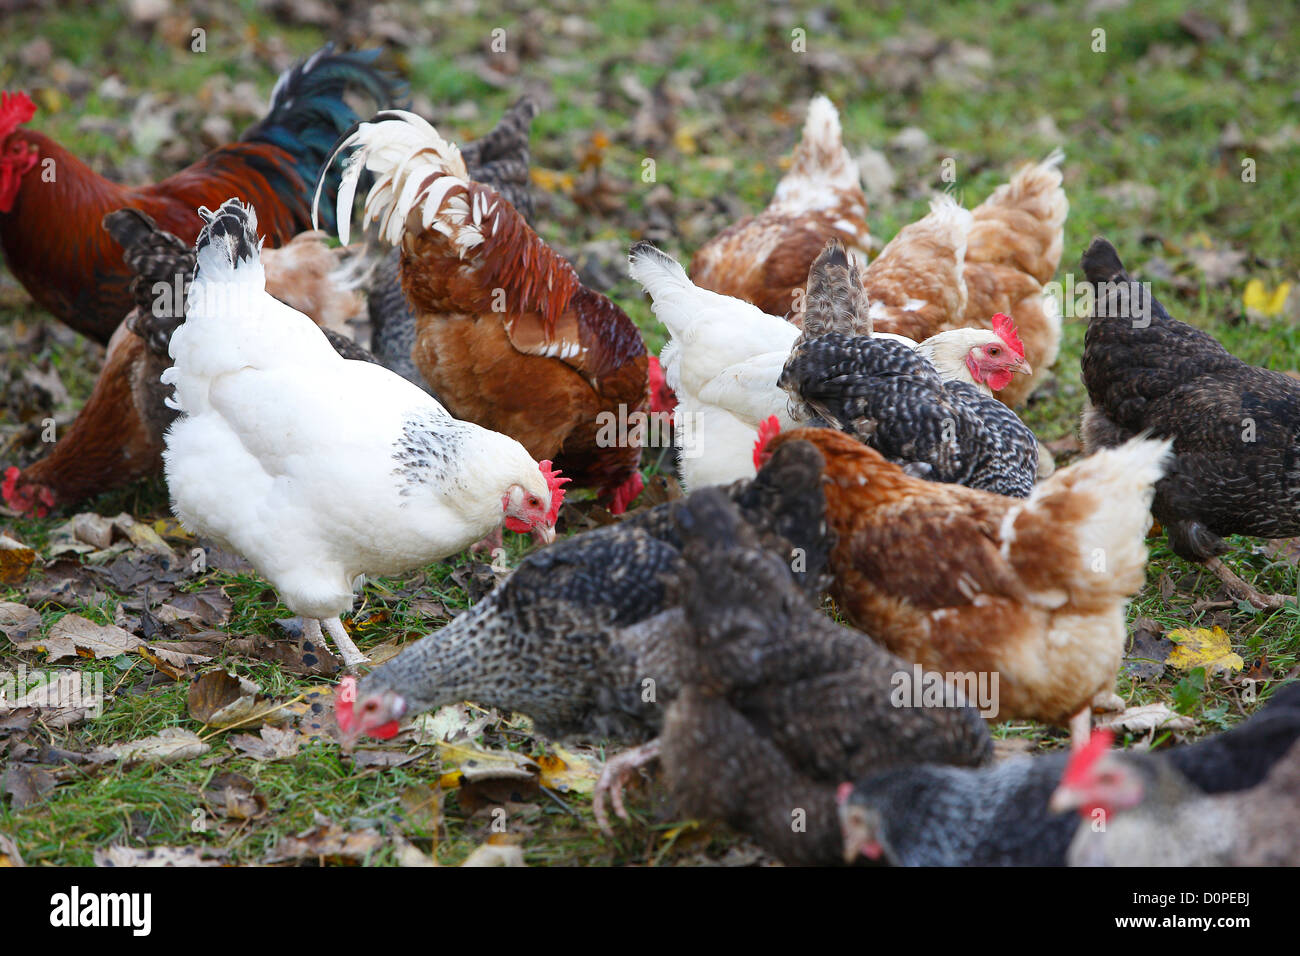 farm images chickens - Stock Image